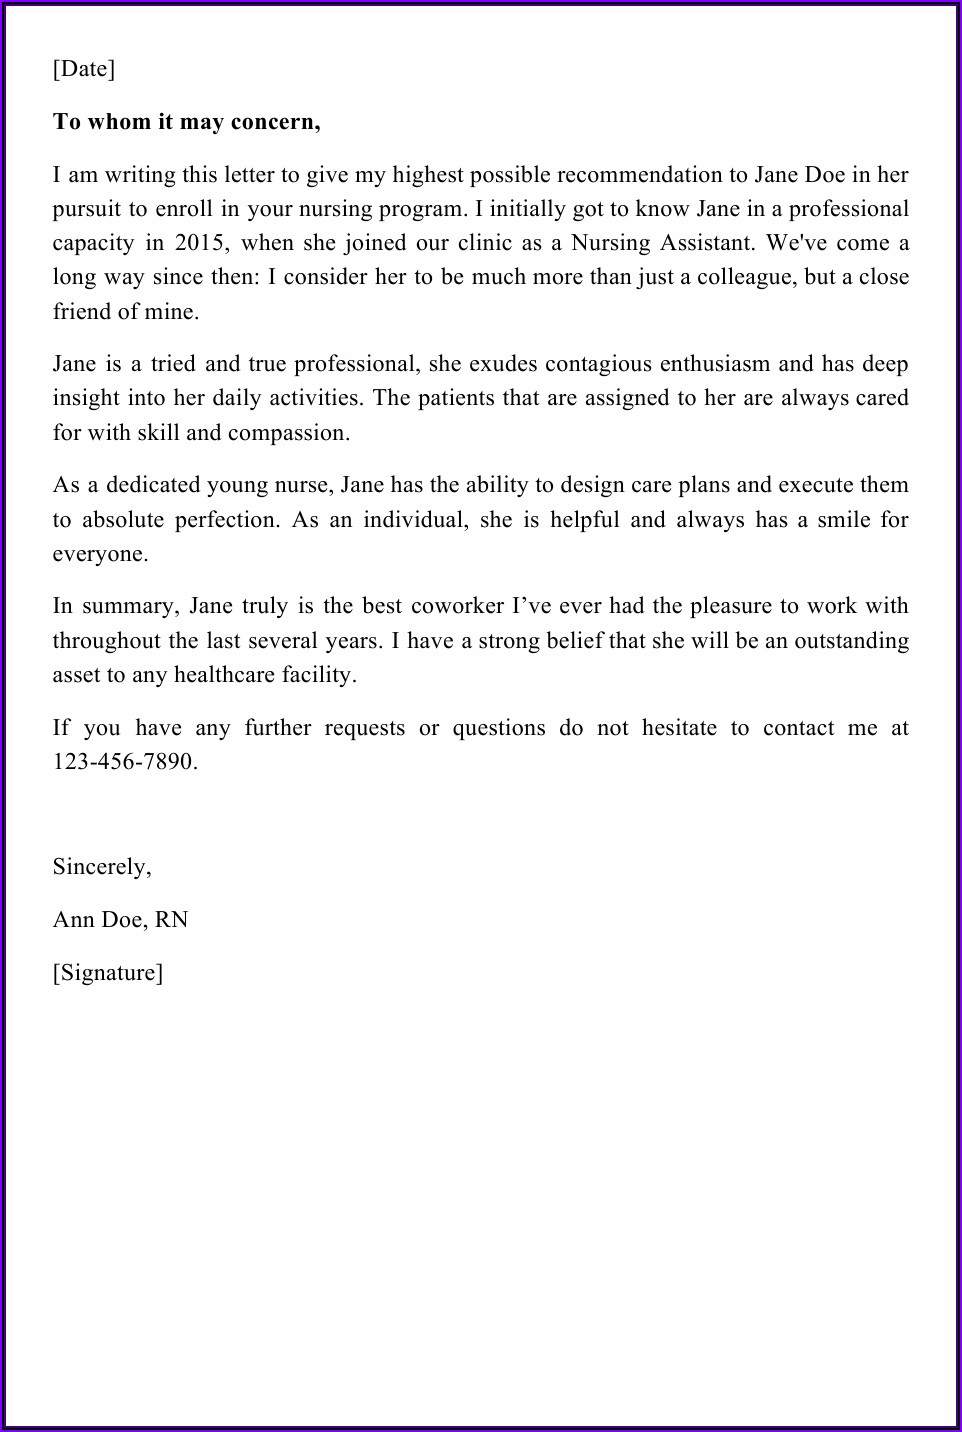 Sample Letter Of Recommendation For Nurse Colleague